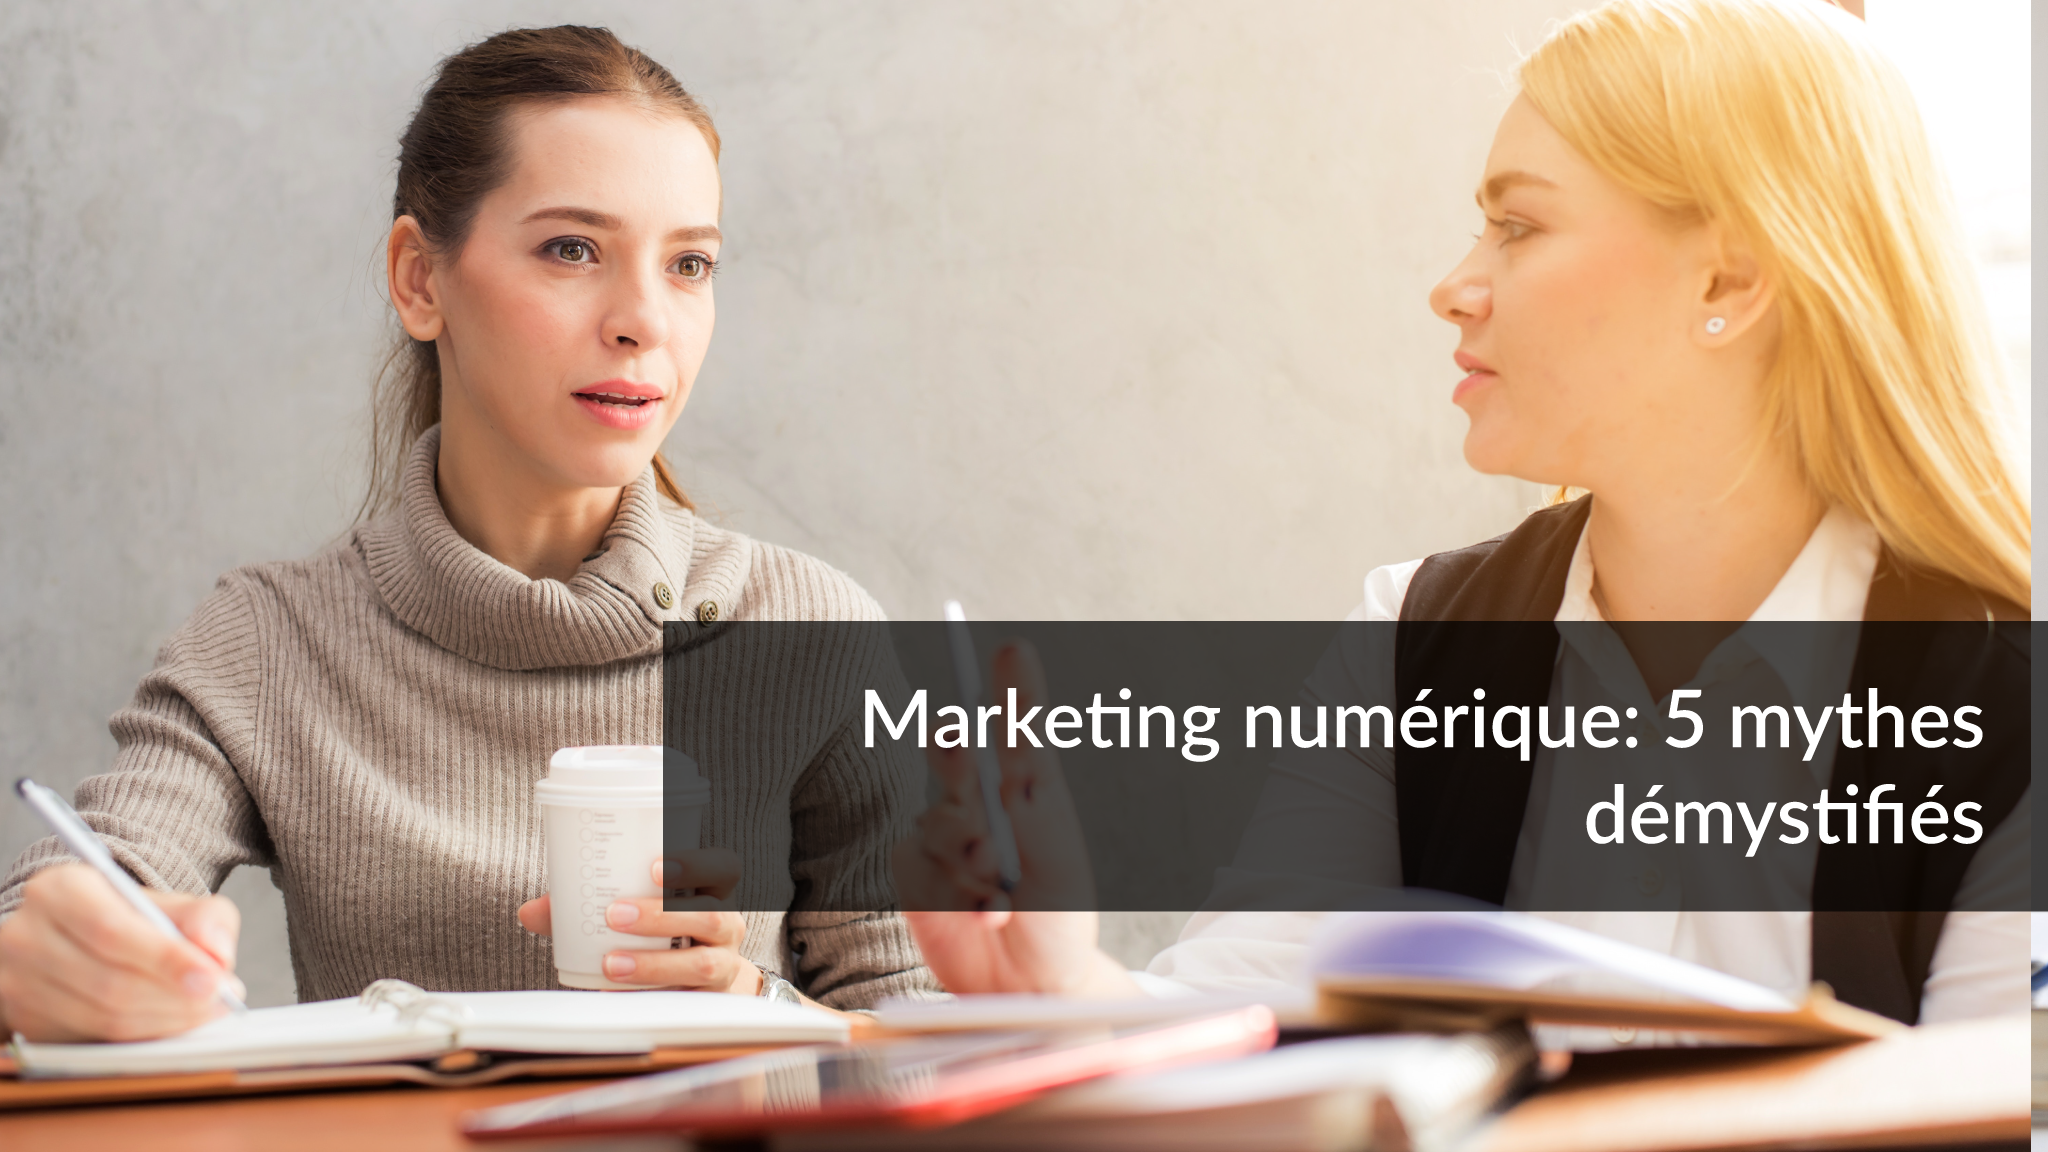 Marketing numérique : 5 mythes démystifies | Studio Grafik